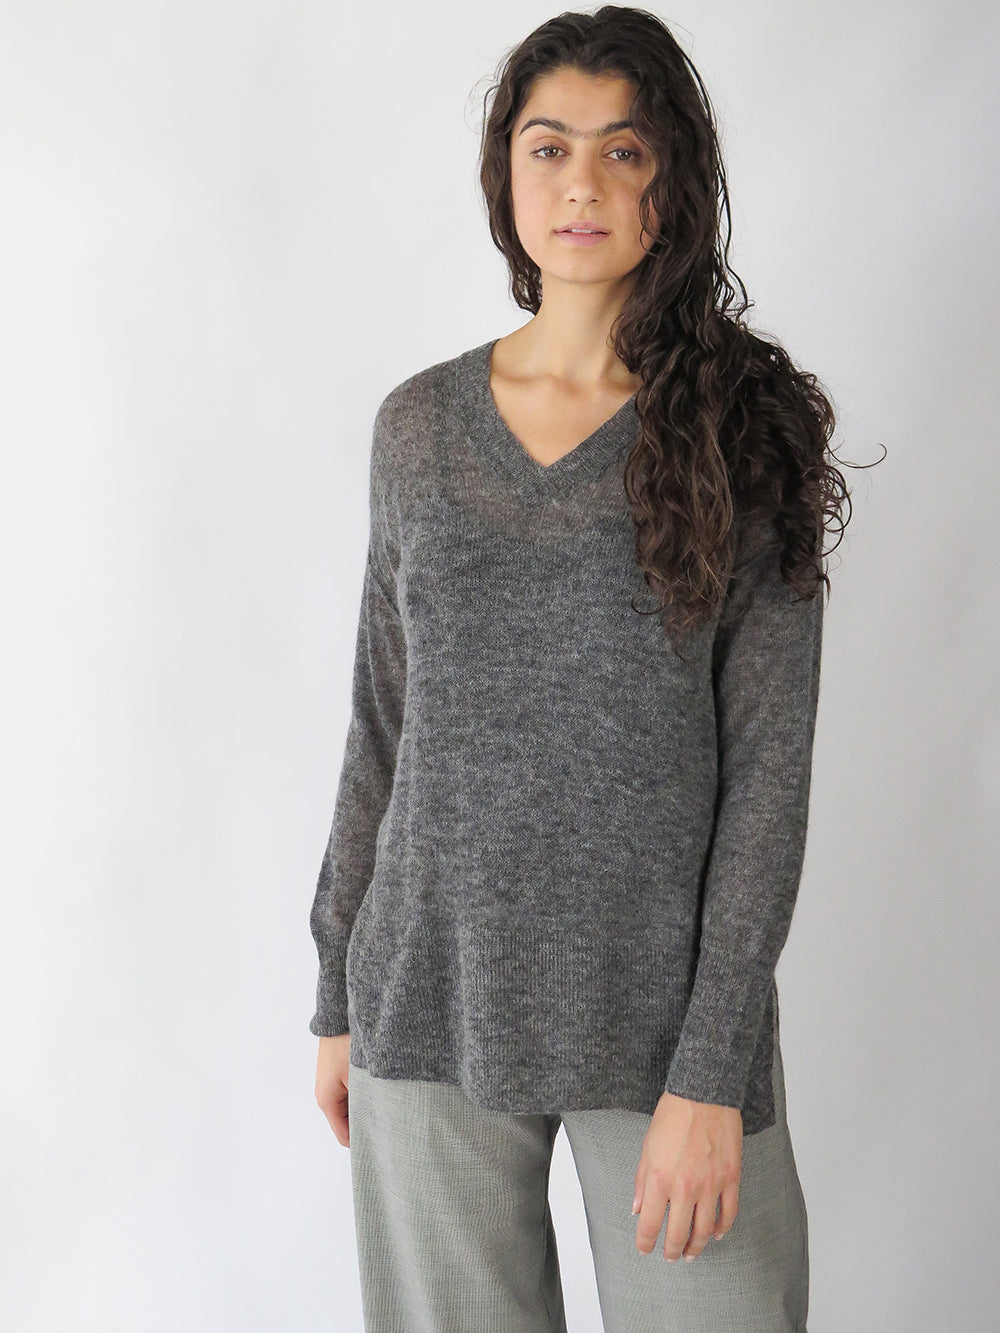 tissue v-neck pullover in charcoal